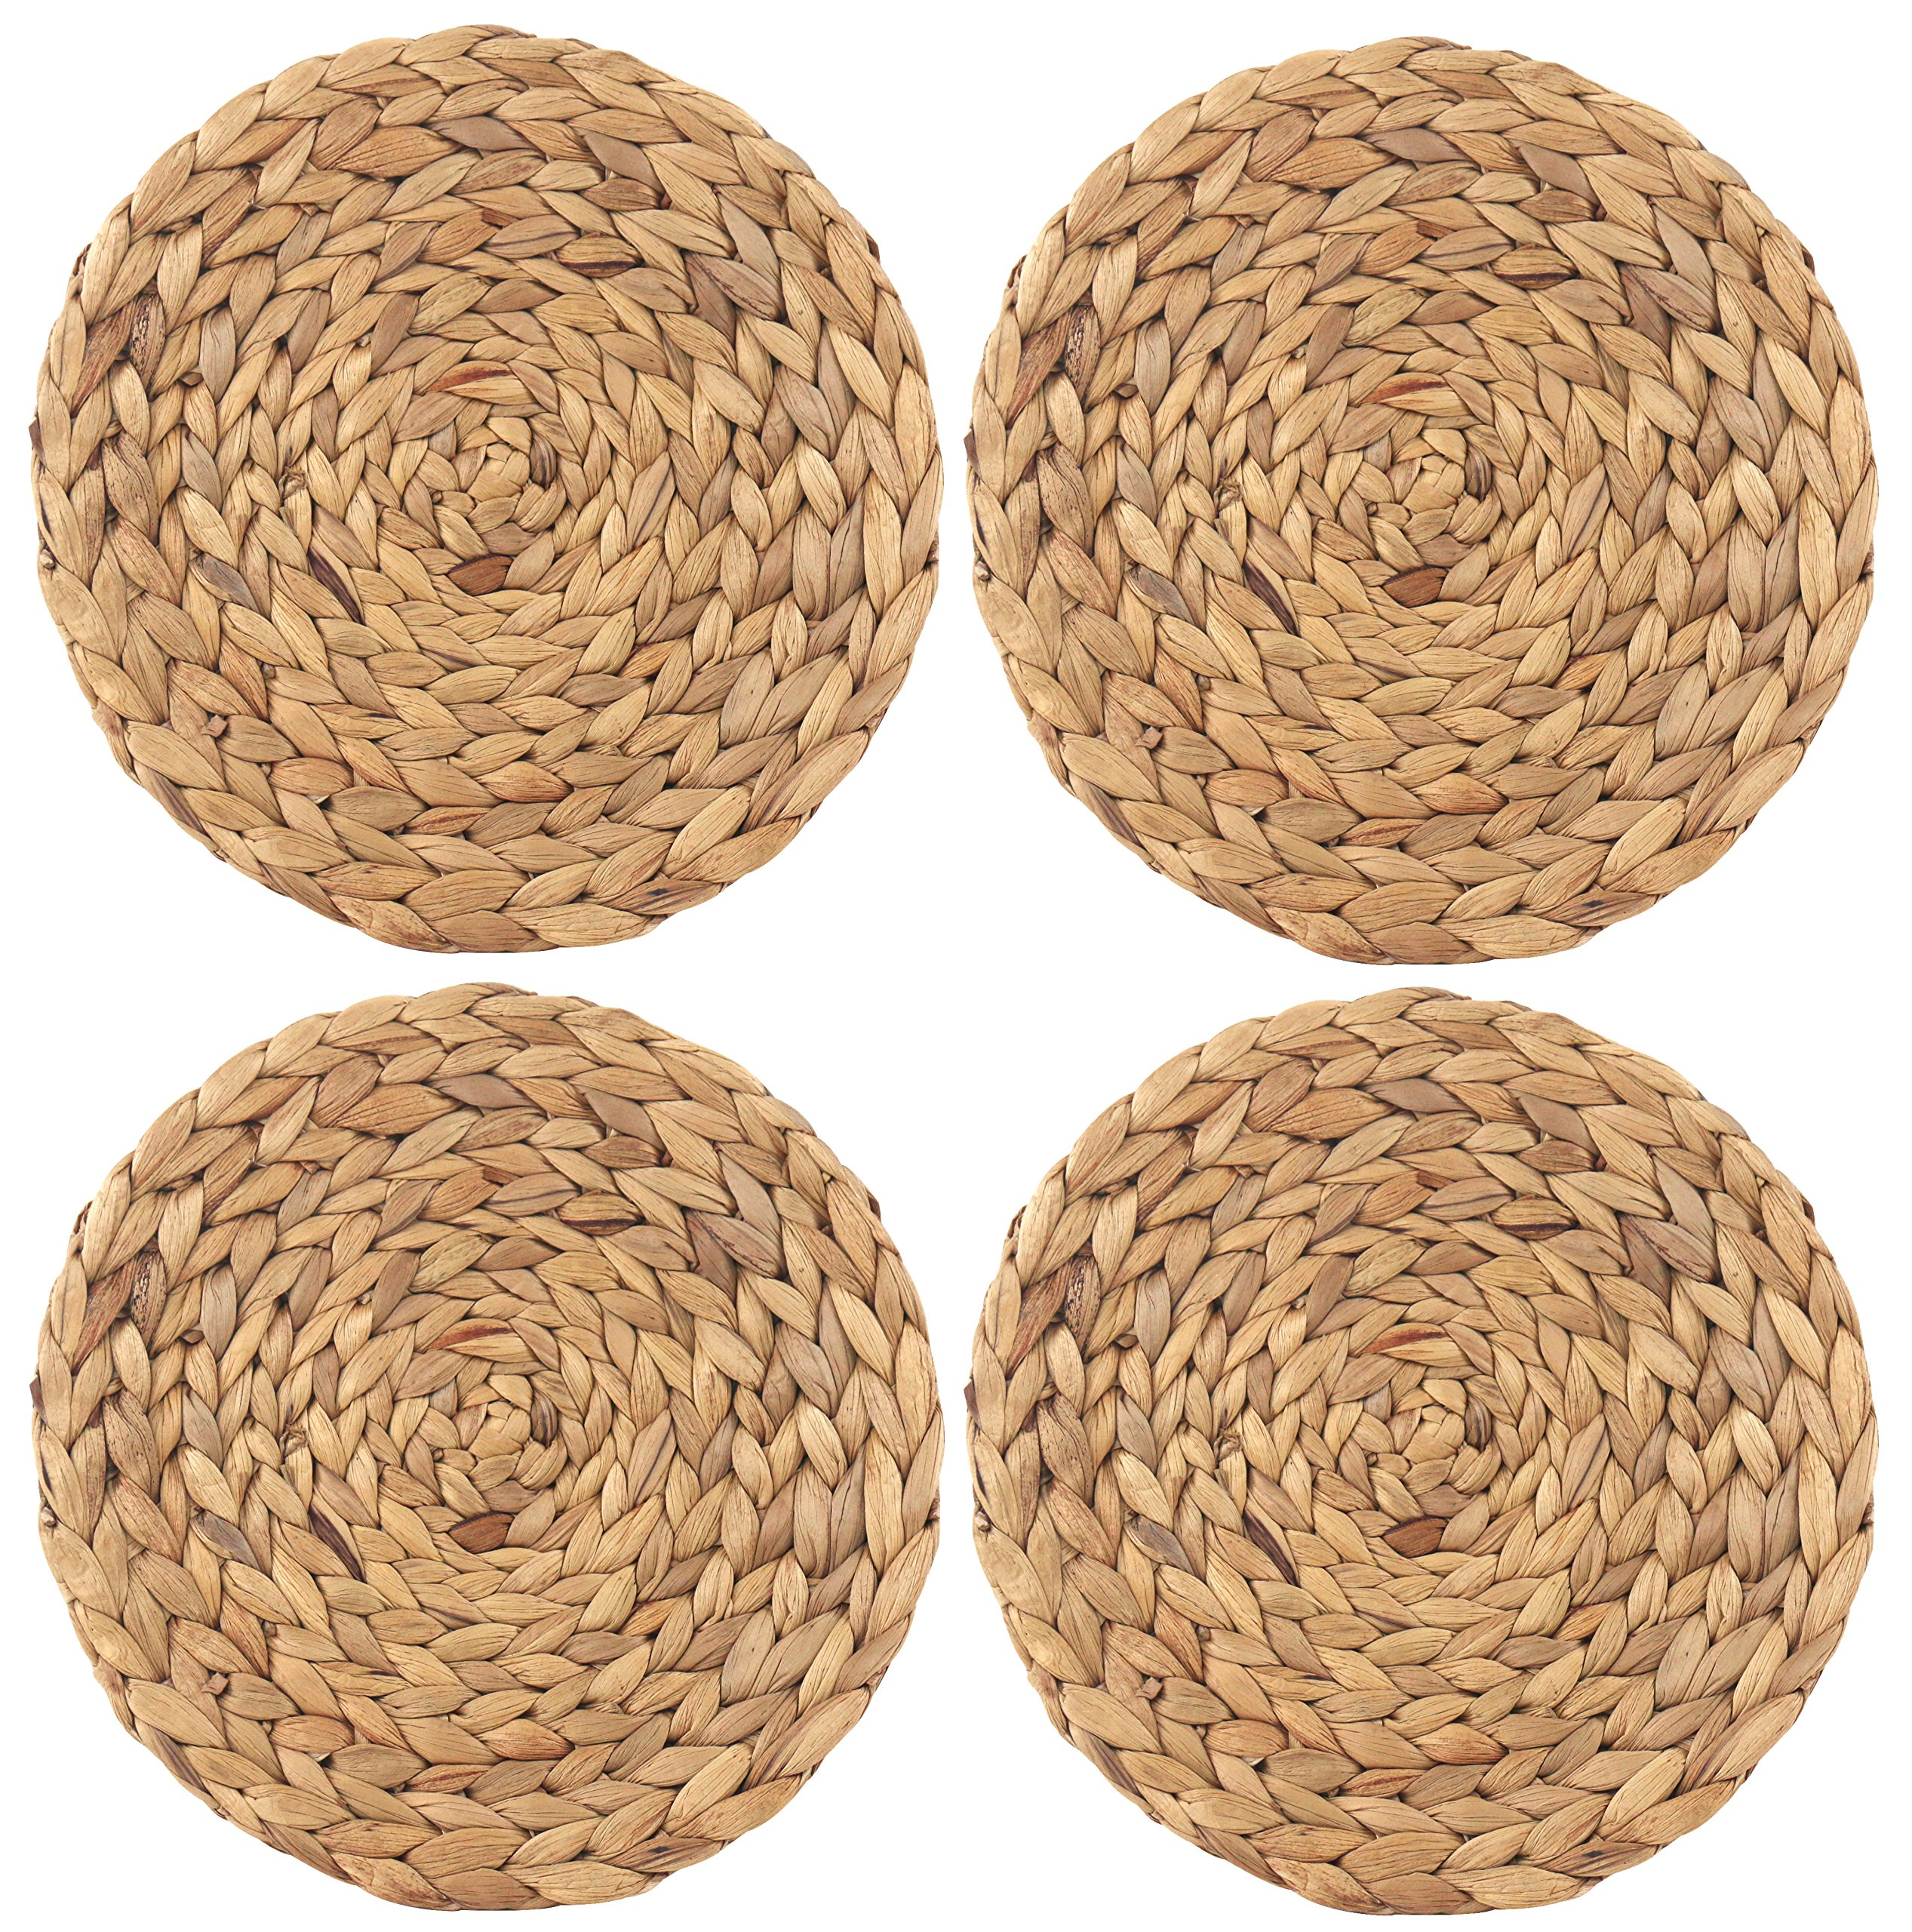 "wellhouse Natural Handmade Straw Woven Placemat Wooden Round Braided Mat Heat Resistant Hot Insulation Anti-Skidding Pad… - Material: Water Hyacinth,corn,cattail. Environmently friendly.You can use it without worrying about safety problems. Size:We have different sizes for you to choose. 5.91"", 7.08"", 7.87"", 11.81"", 15.75"", 14.56"", 11.81*17.72"". Insulated,it can protect your dining table from heat. - placemats, kitchen-dining-room-table-linens, kitchen-dining-room - A1H5Ax2cJ2L -"